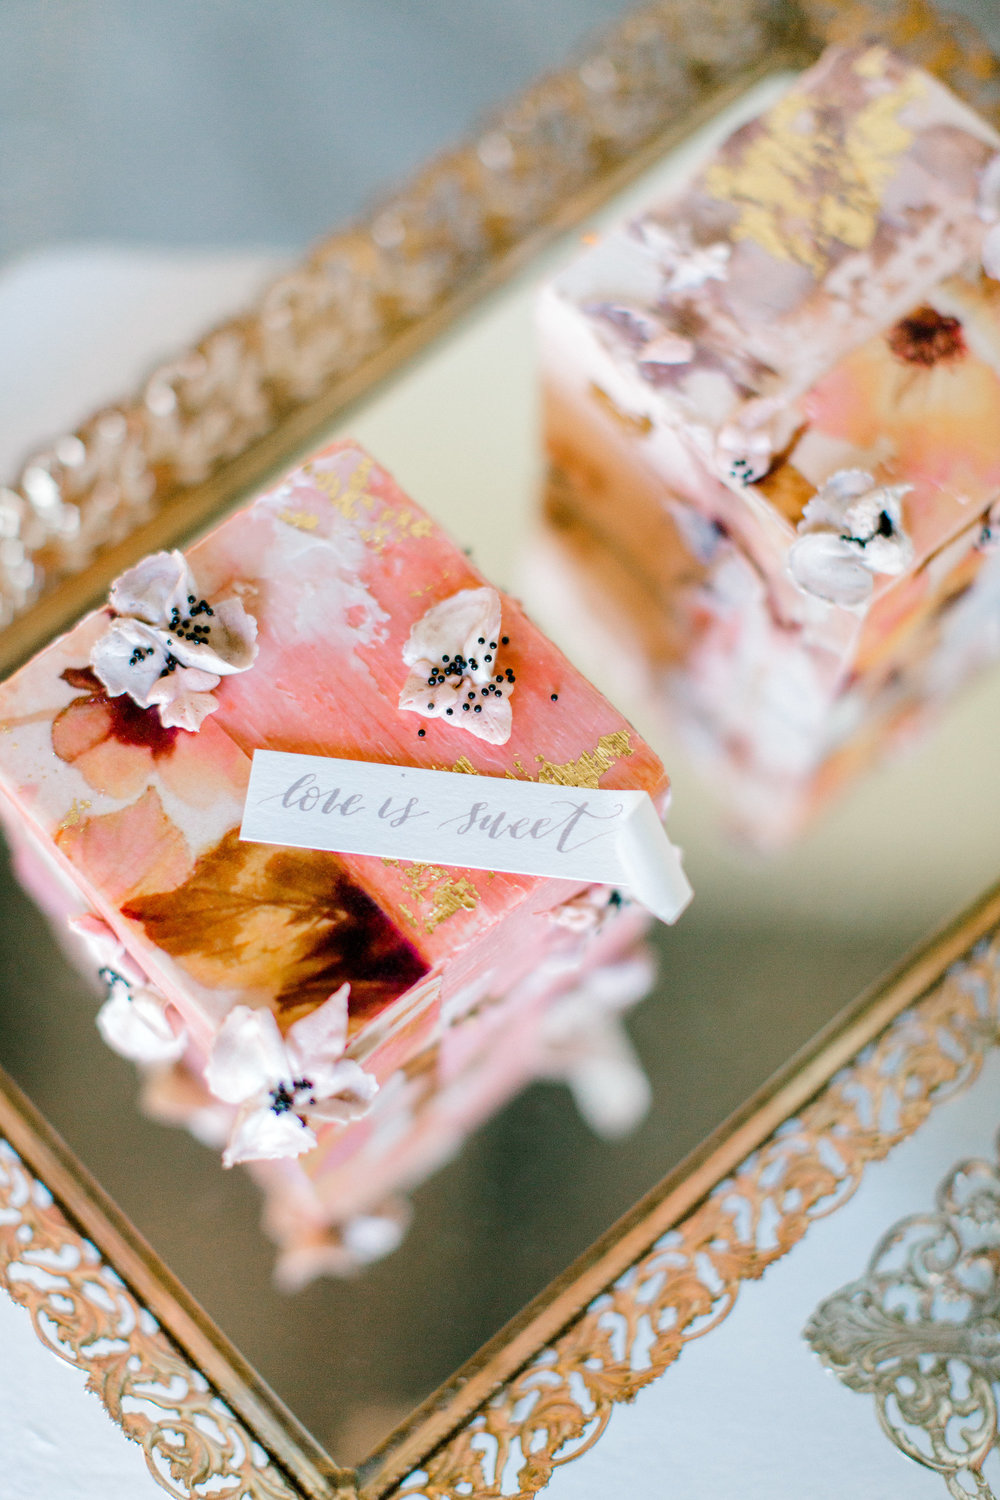 Photo By: Jess Imrie Photo | Planner: June Bloom Events | Cakelette: Love In Bloom Cakes